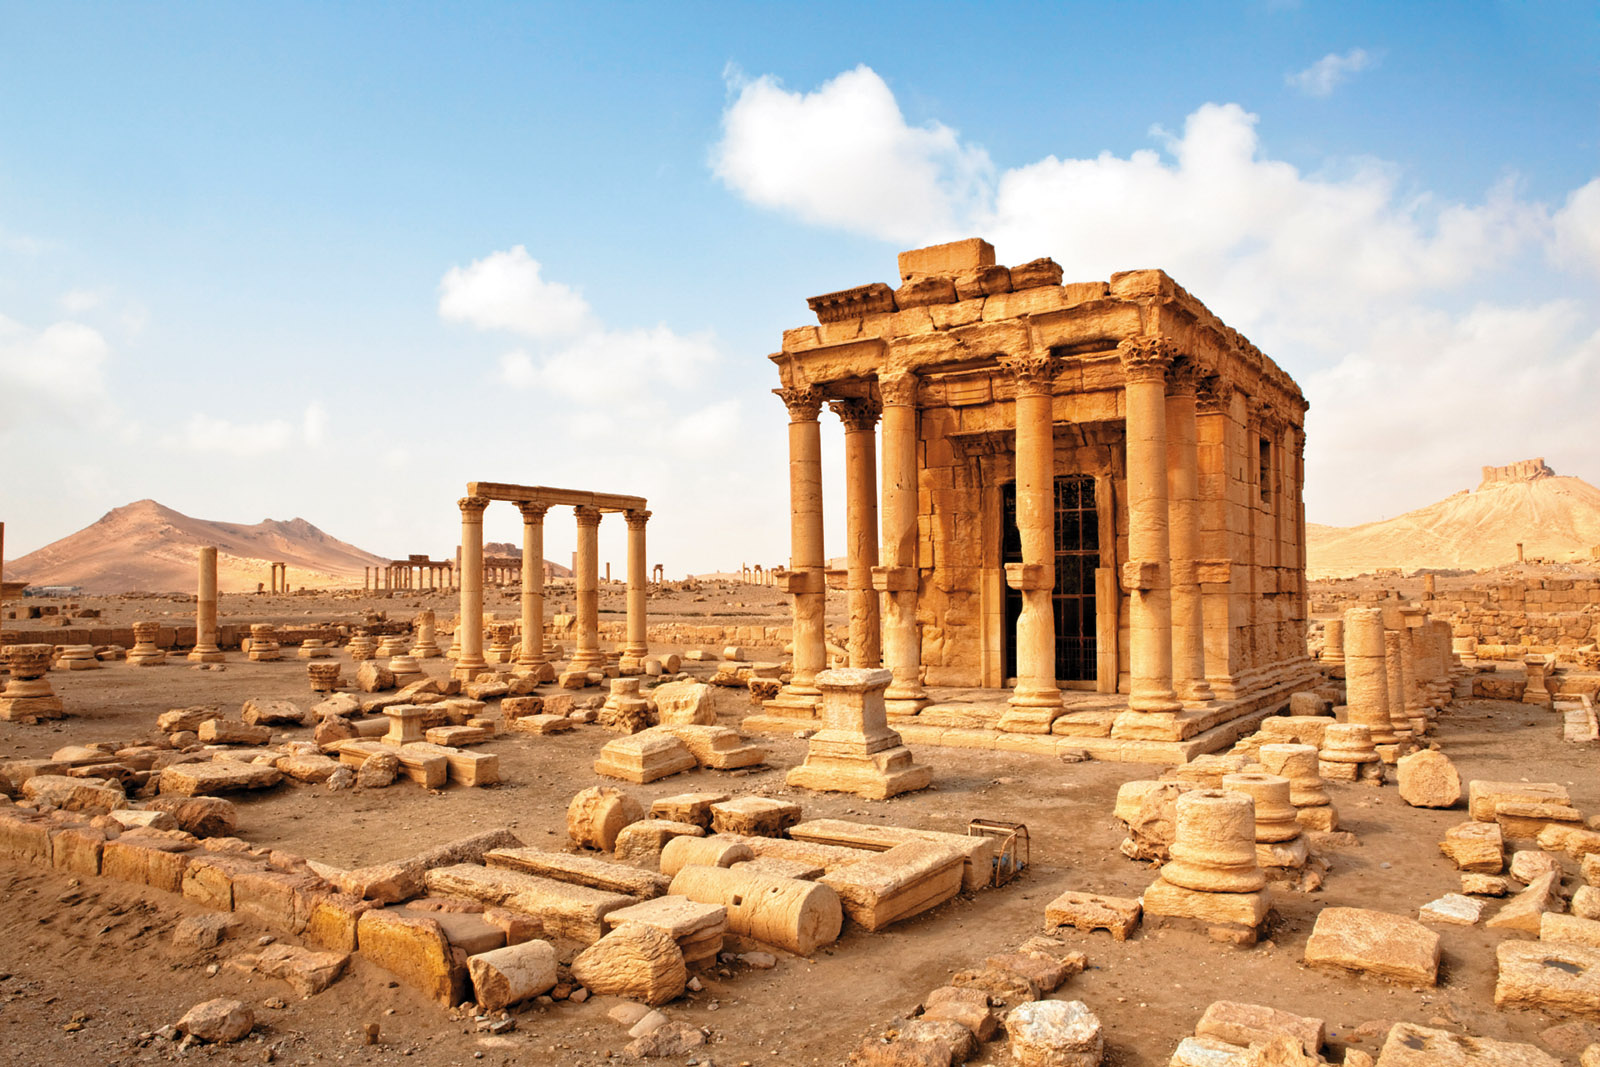 The ruins of the ancient city of Palmyra in 2009, many of which were destroyed by ISIS militants in 2015